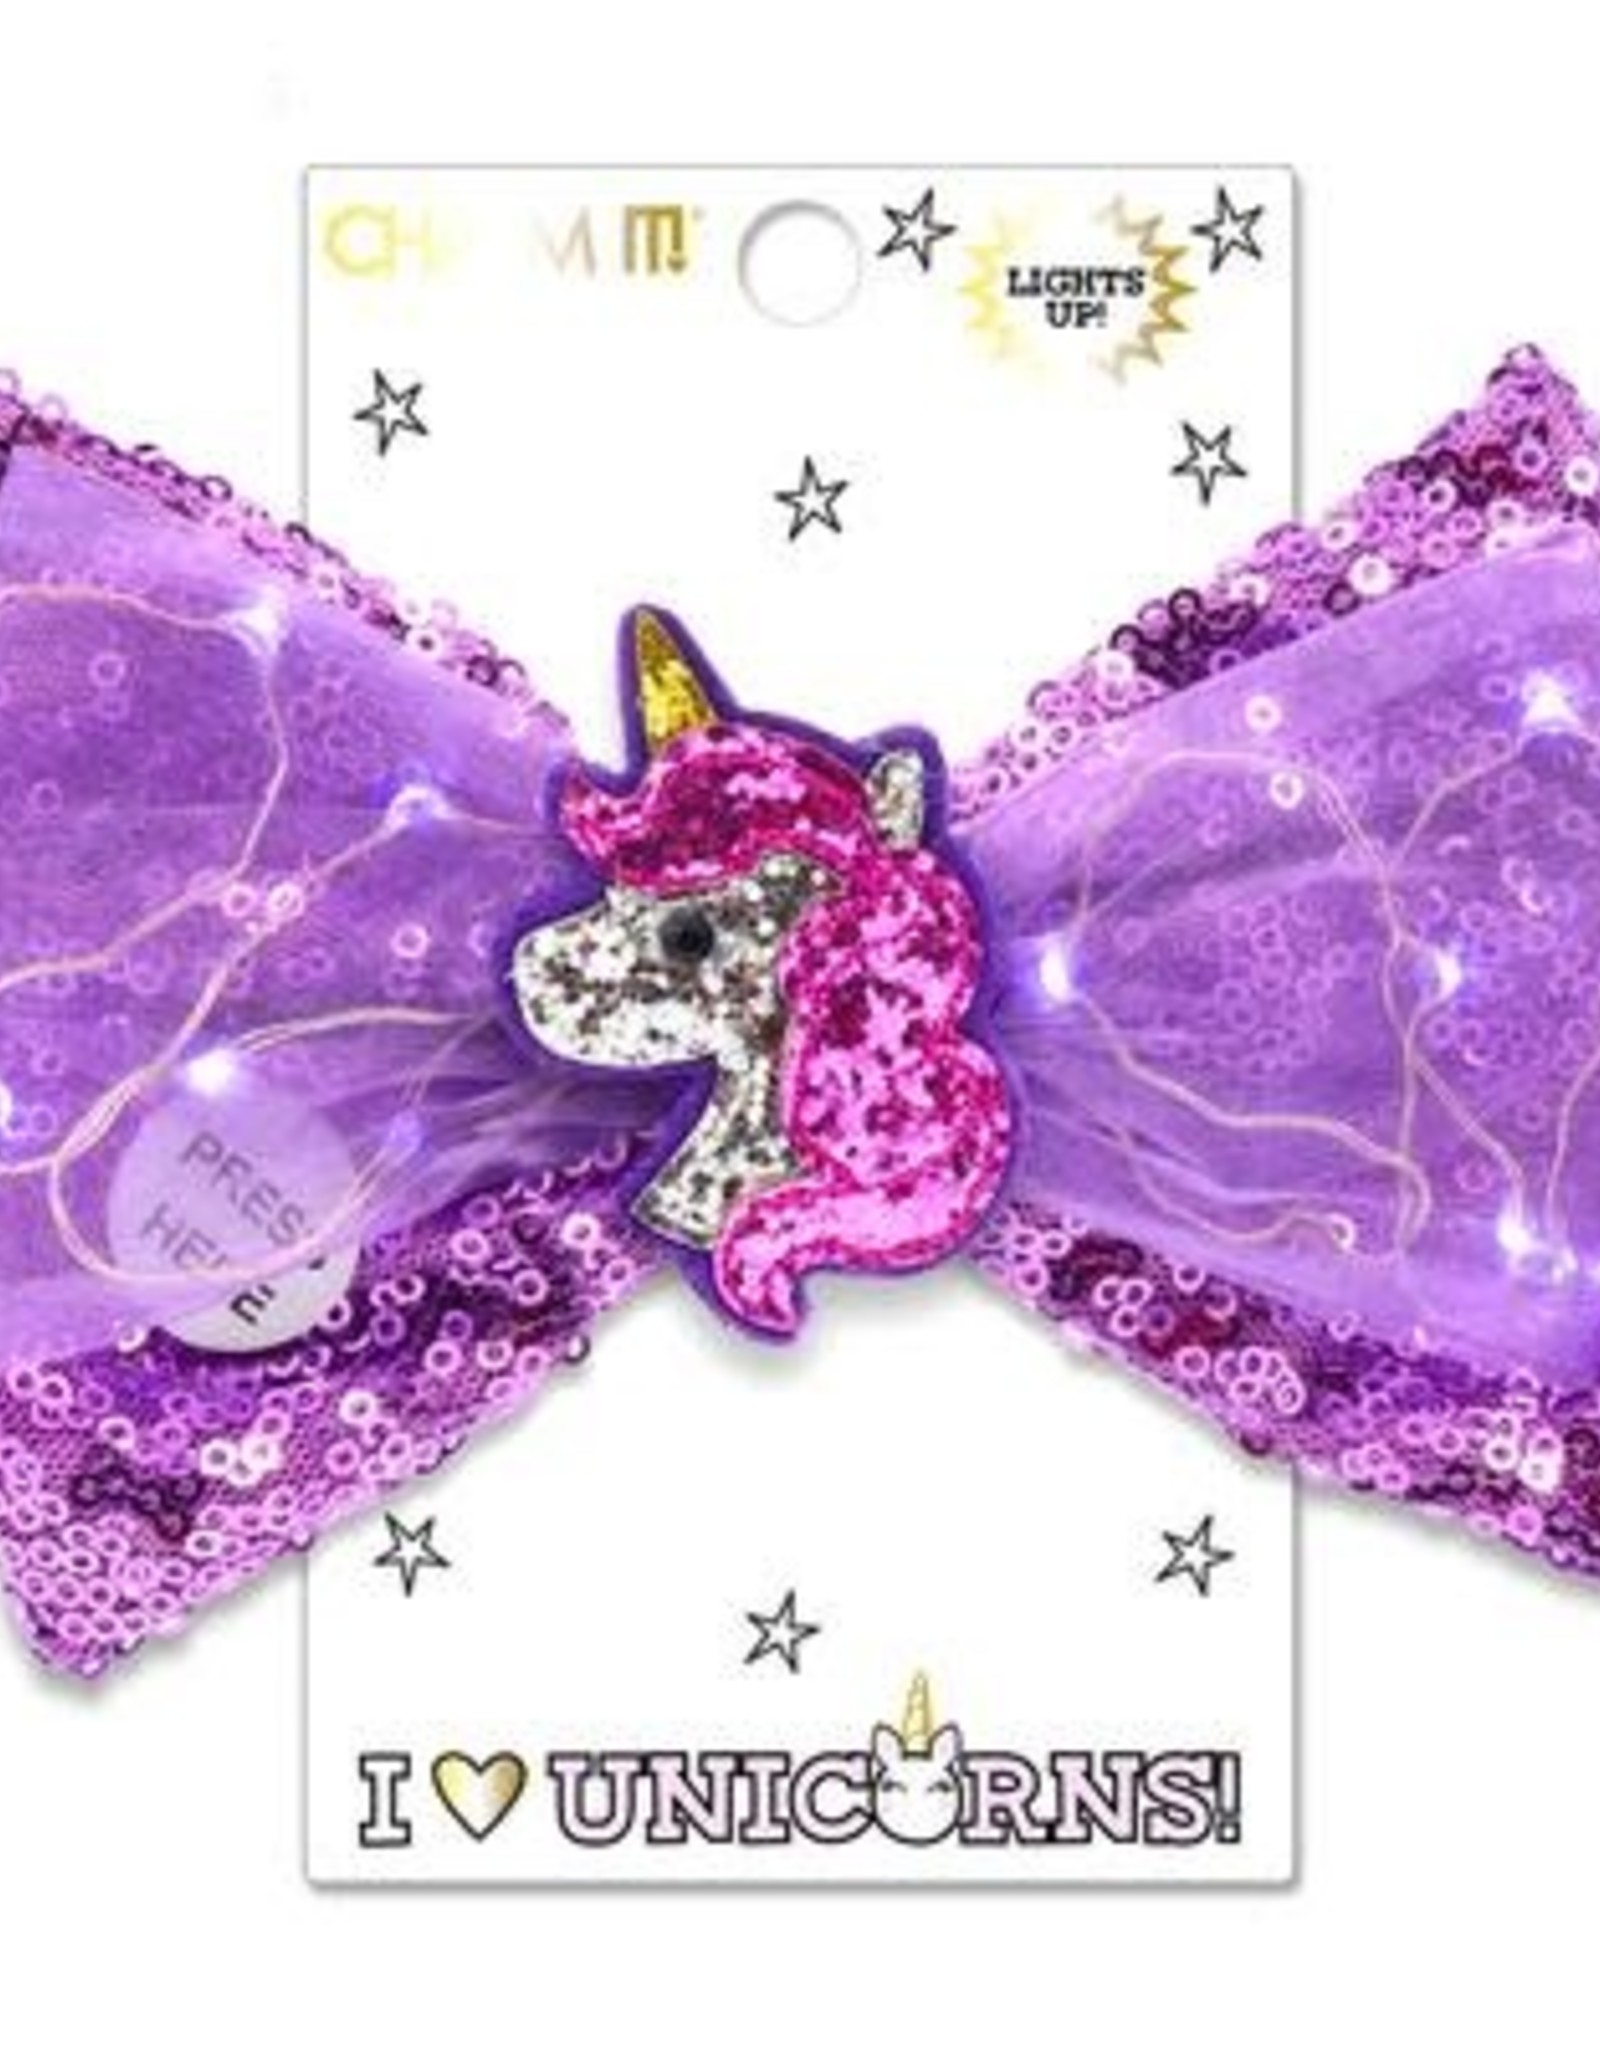 Charm It! Unicorn Light Up Bow